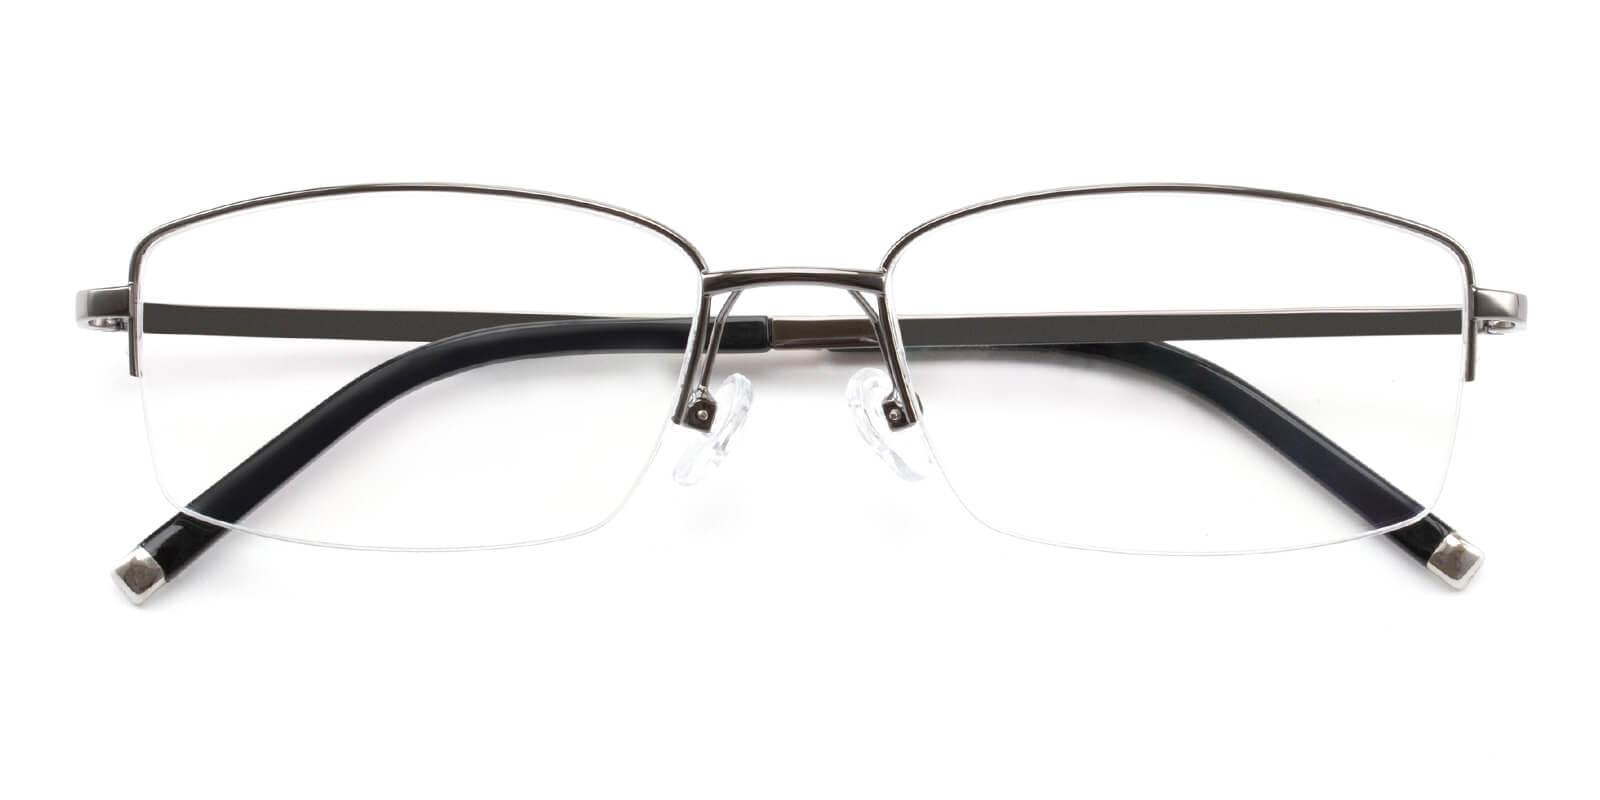 Revelino-Gun-Rectangle-Titanium-Eyeglasses-detail